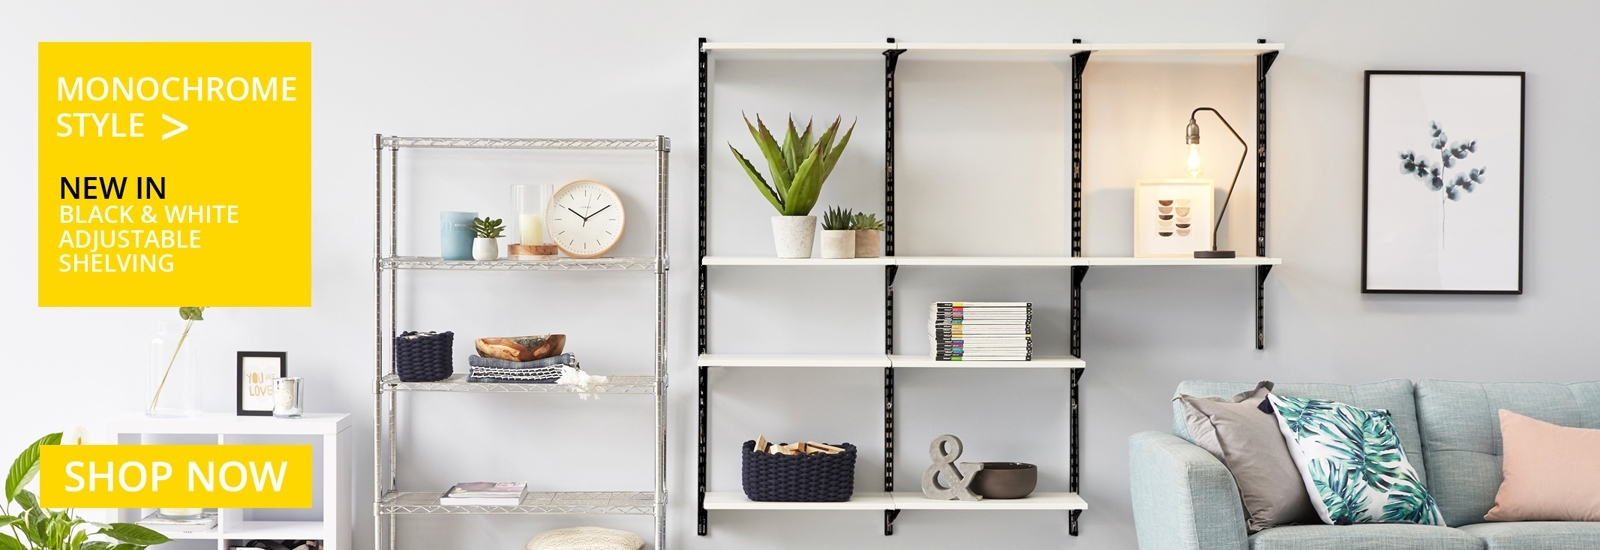 Monochrome Adjustable shelving